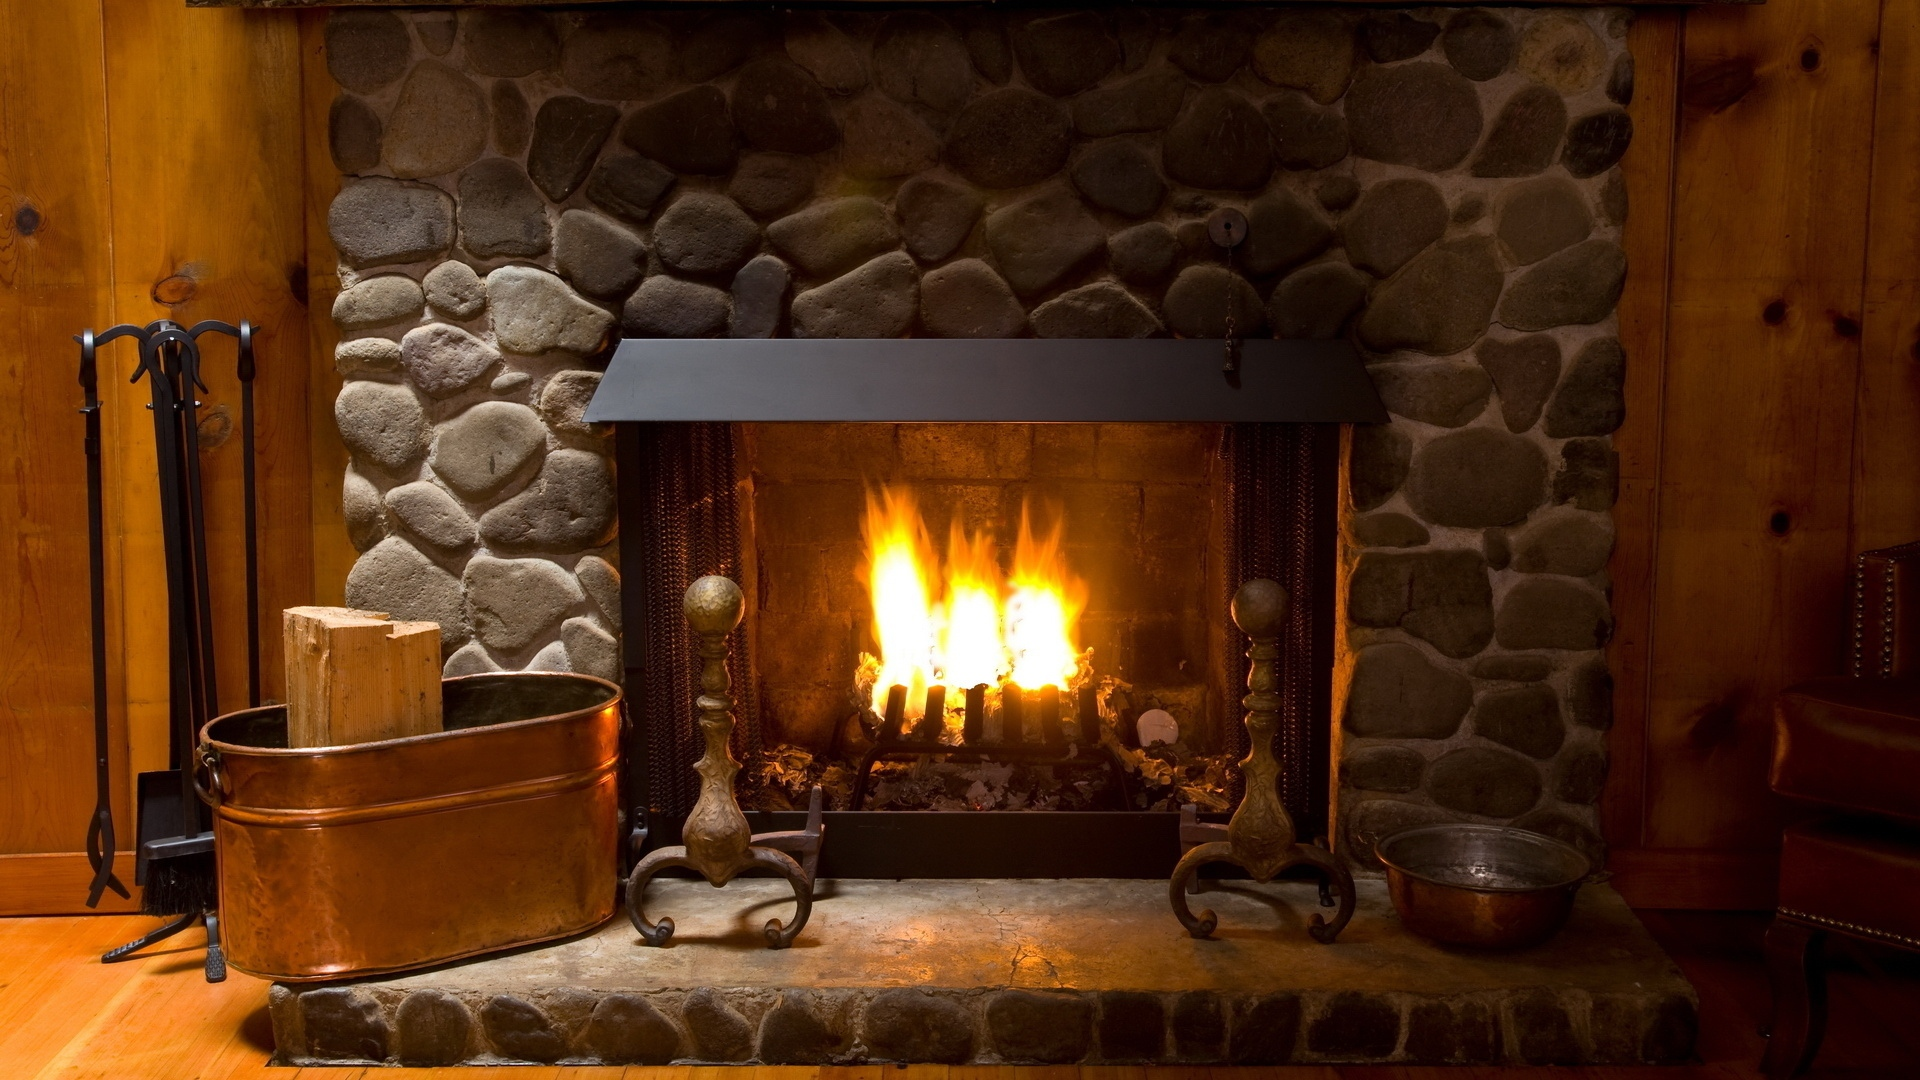 Download Wallpaper 1920x1080 fireplace, cozy, interior, lamp Full ...